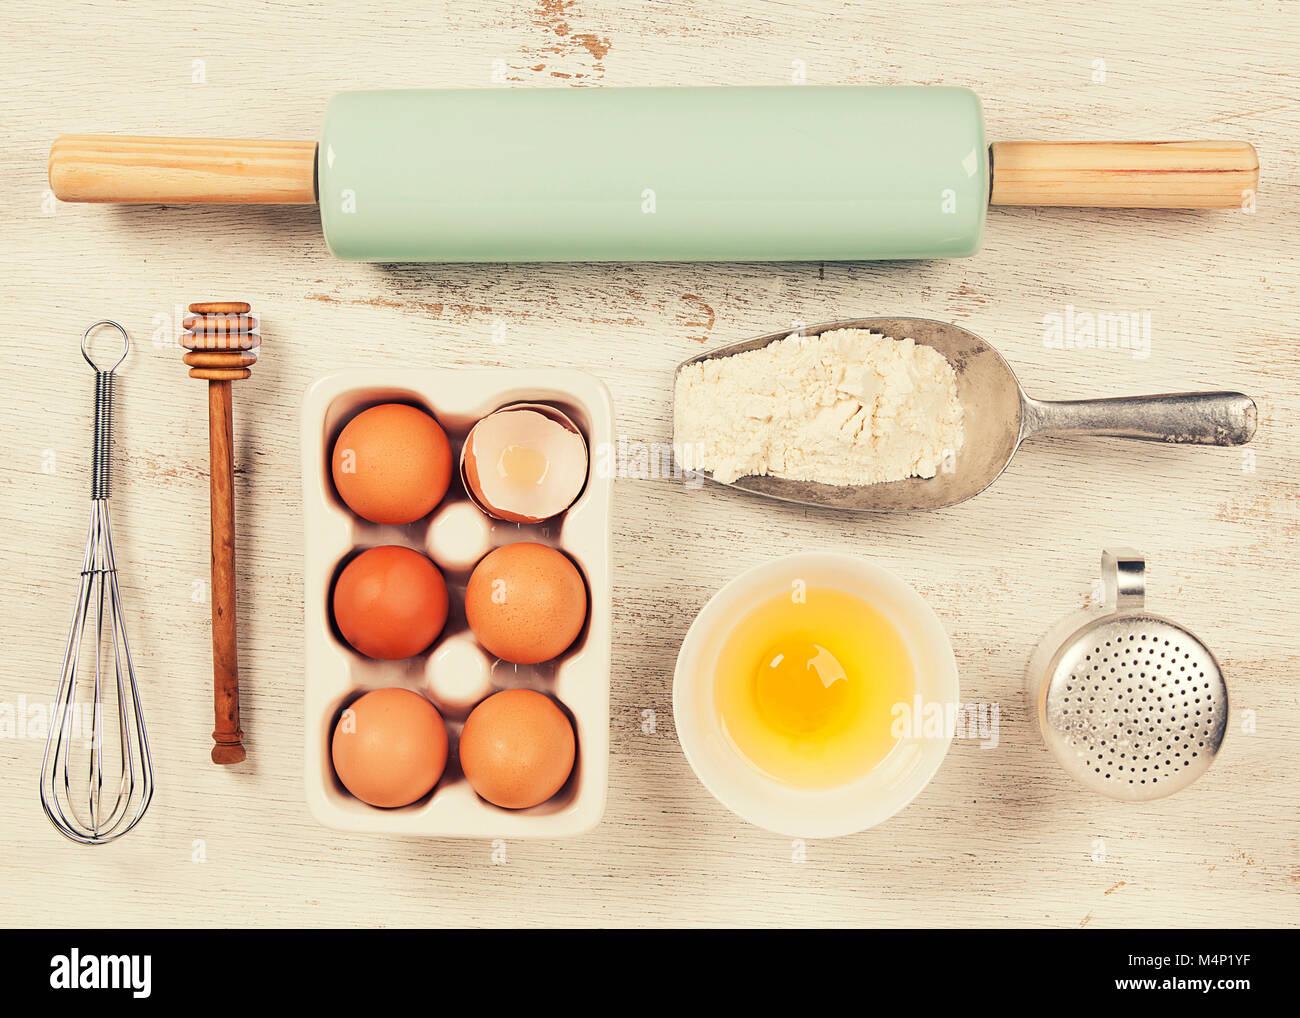 Baking Tools And Ingredients   Flour, Rolling Pin, Eggs, Measuring Spoons  On Vintage Wood Table. Top View. Rustic Background With Free Text Space